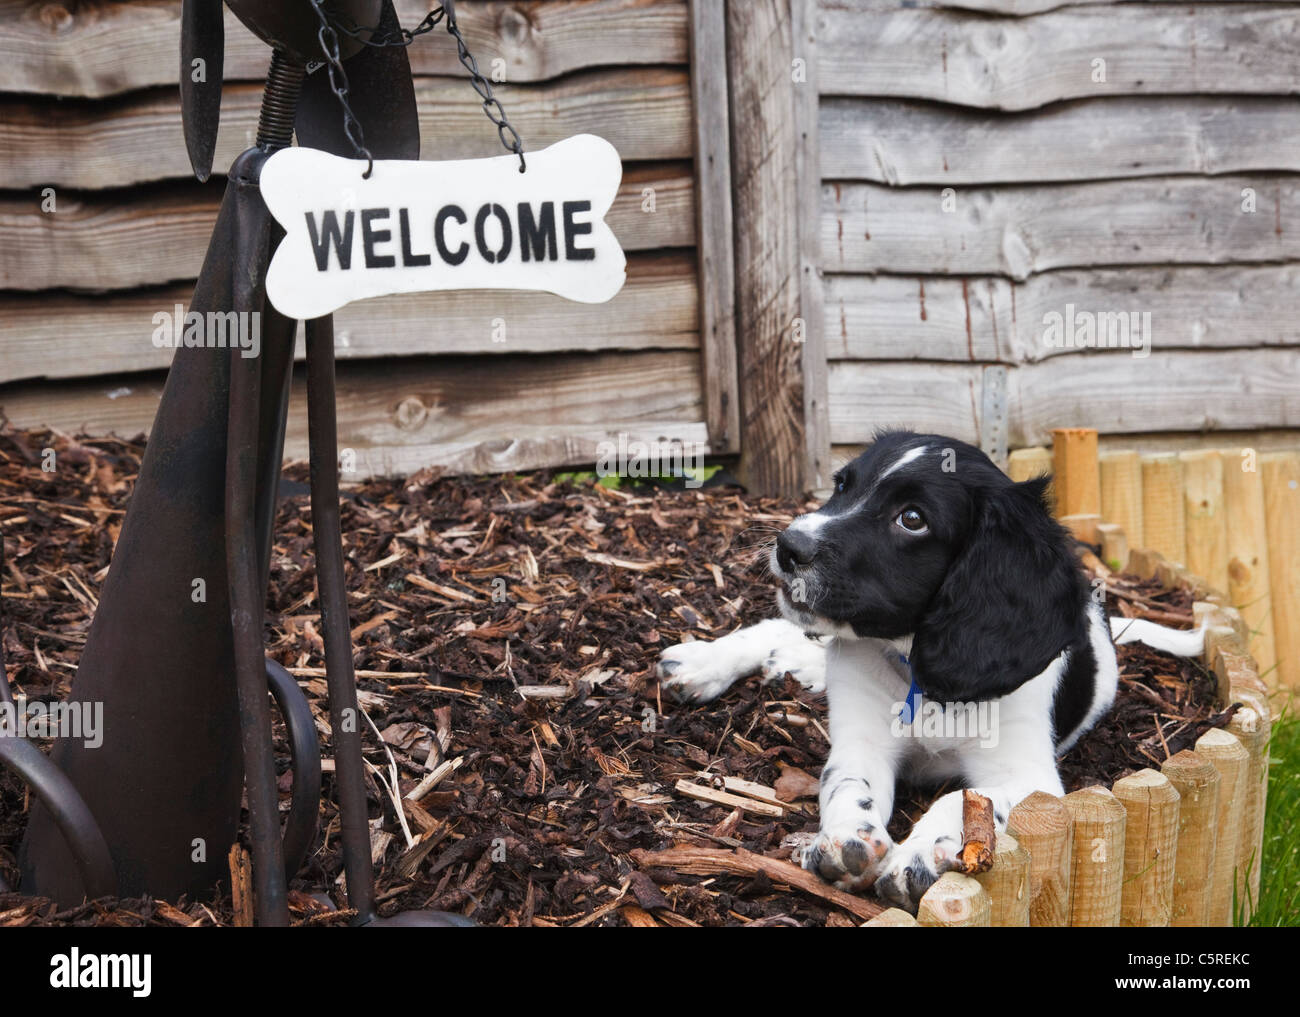 A ten week black and white English Springer Spaniel puppy dog looking up at a welcome sign in the shape of a bone. - Stock Image